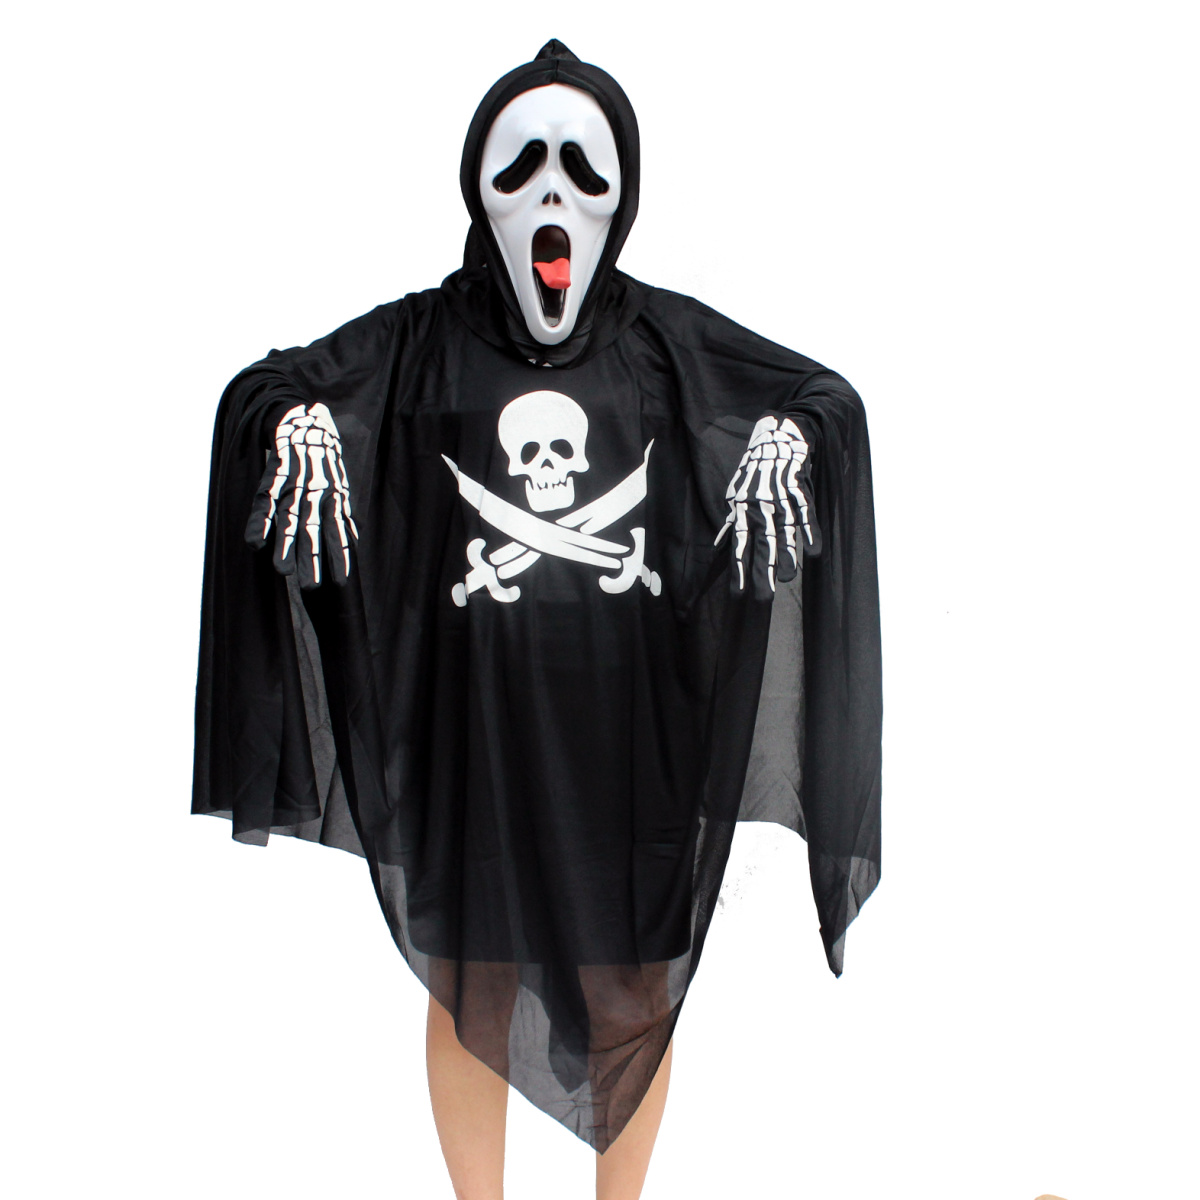 Creepy square halloween costume costumes adult child ghost pirate clothing sickle ghost clothes the devil mask